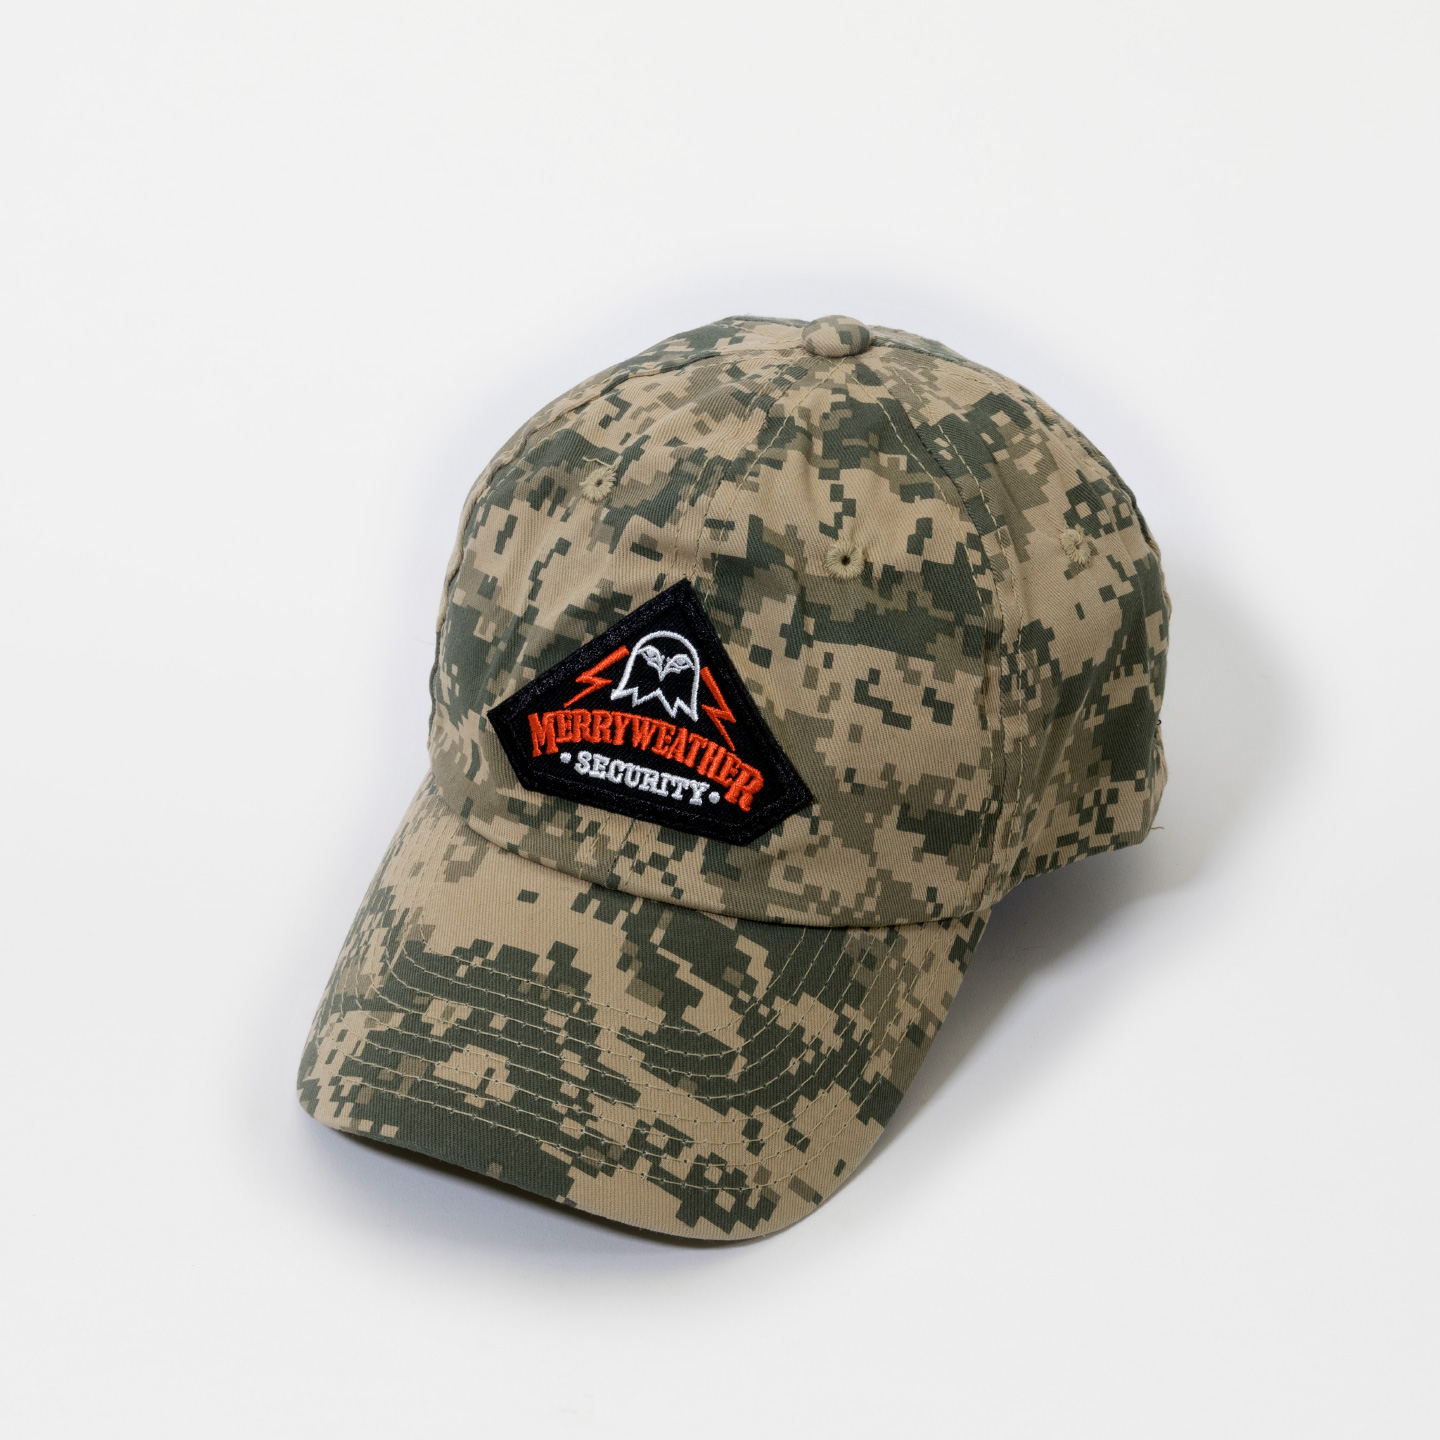 Fatigue Merryweather Security Cap